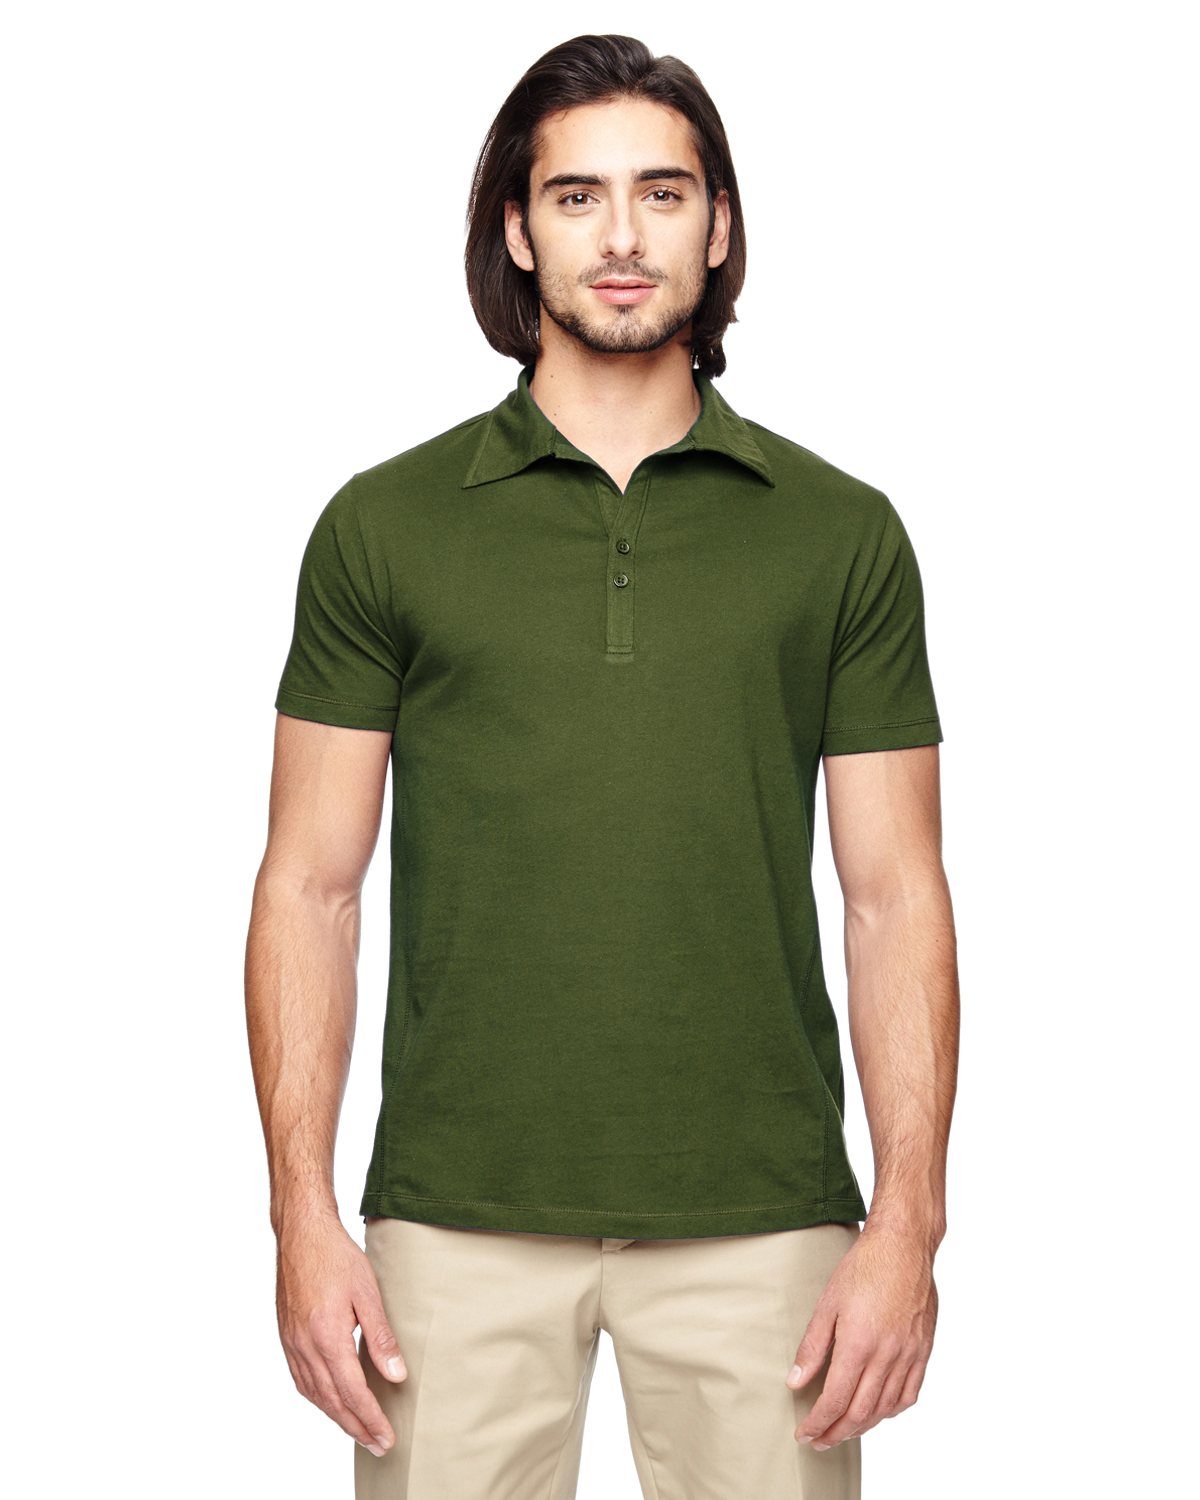 Polo Shirts for Men. You're going to love the classy look of a men's polo shirt. Belk's polo shirts come in varying styles like stripes, prints, classic solid colors like black and white and varying sleeve lengths, from short sleeve to long sleeve.